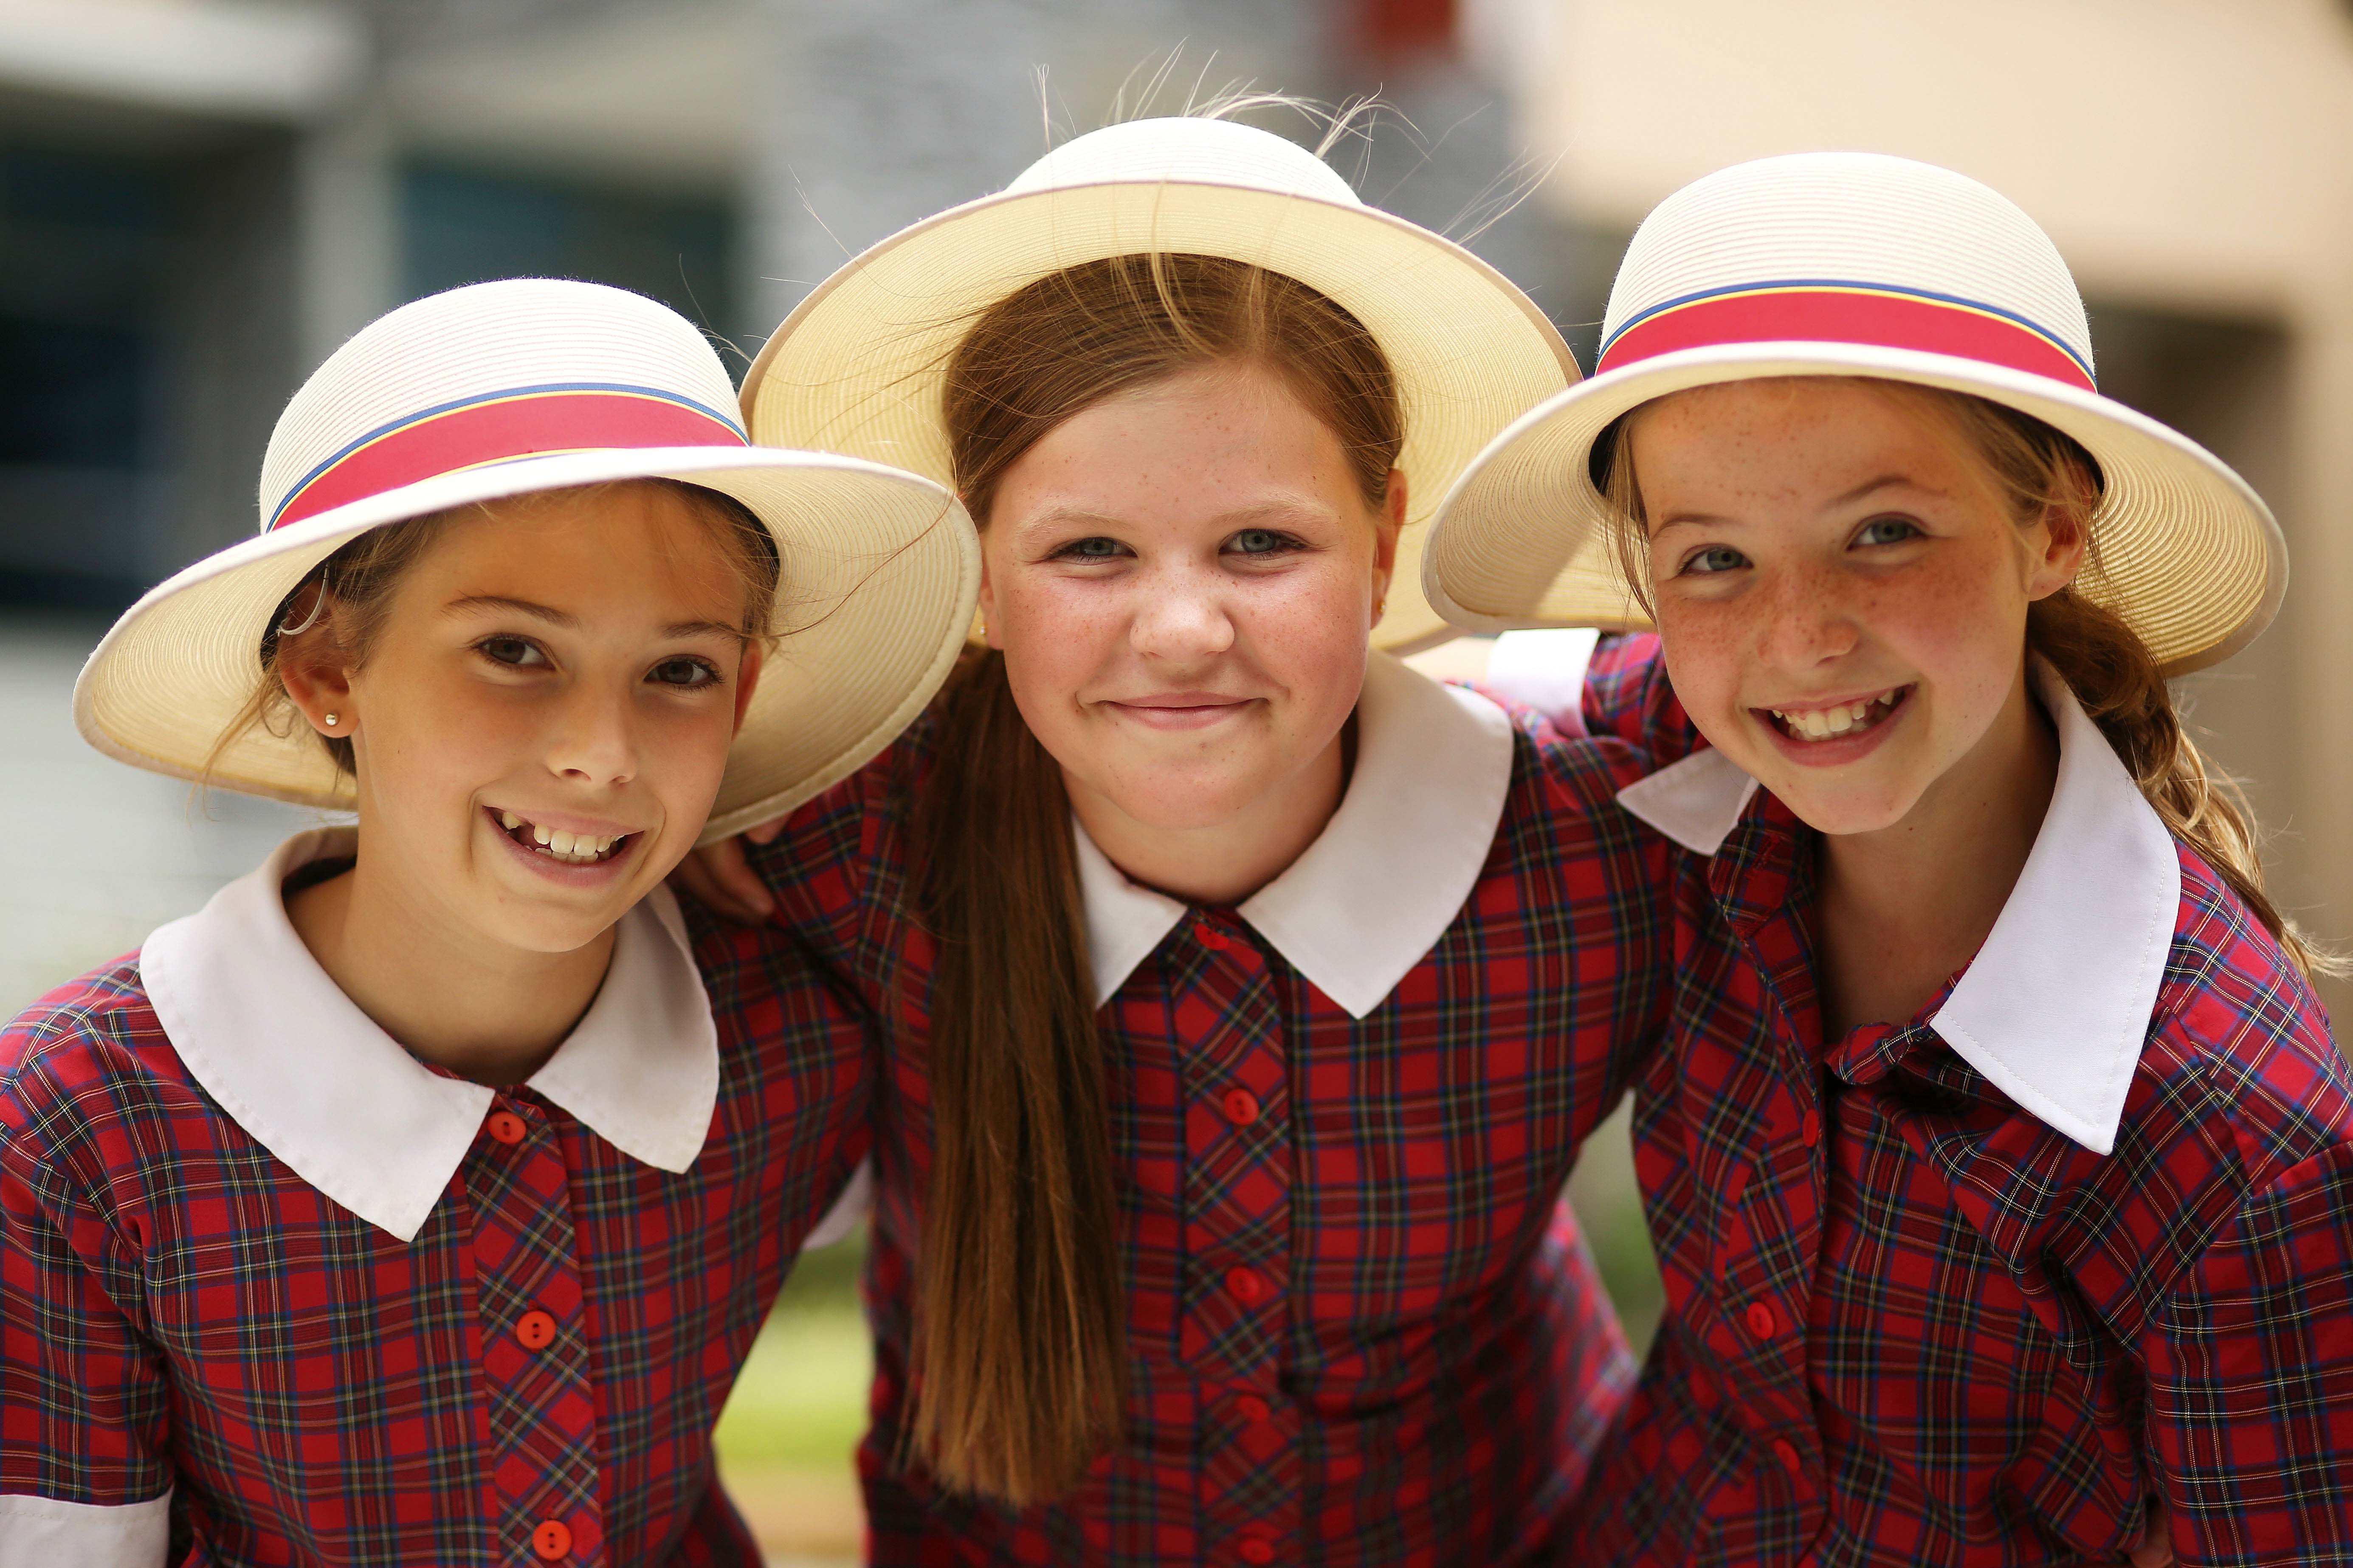 mentone single women Mentone girls' grammar school is an independent, anglican day school for girls, located in mentone,  mentone girls' grammar school is located on single campus .